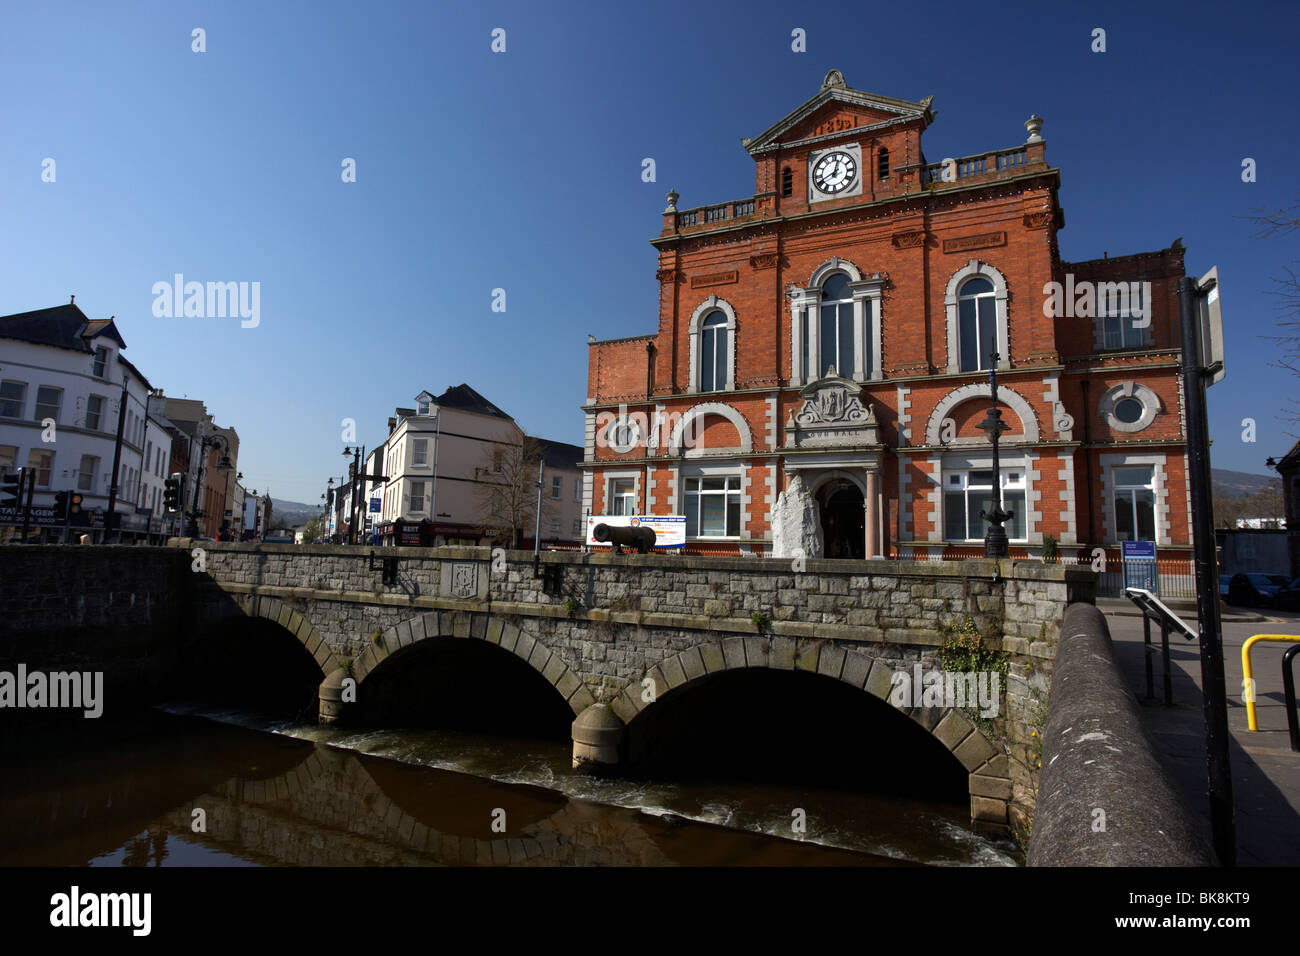 Newry Town Hall designed by William Batt county armagh side northern ireland uk - Stock Image